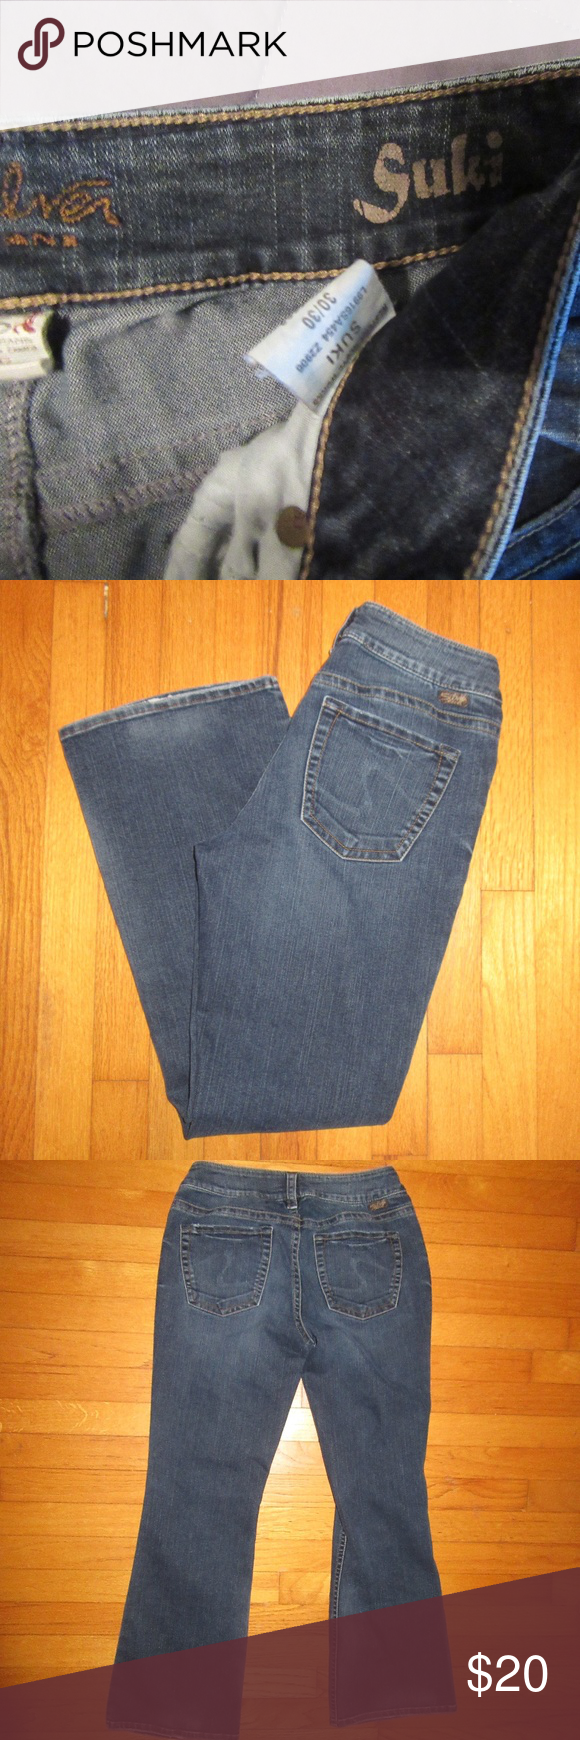 70bda801 Silver Suki Jeans Western Glove Works Size 30X30 In good used condition and  from smoke free home. Some wear on bottom of legs.